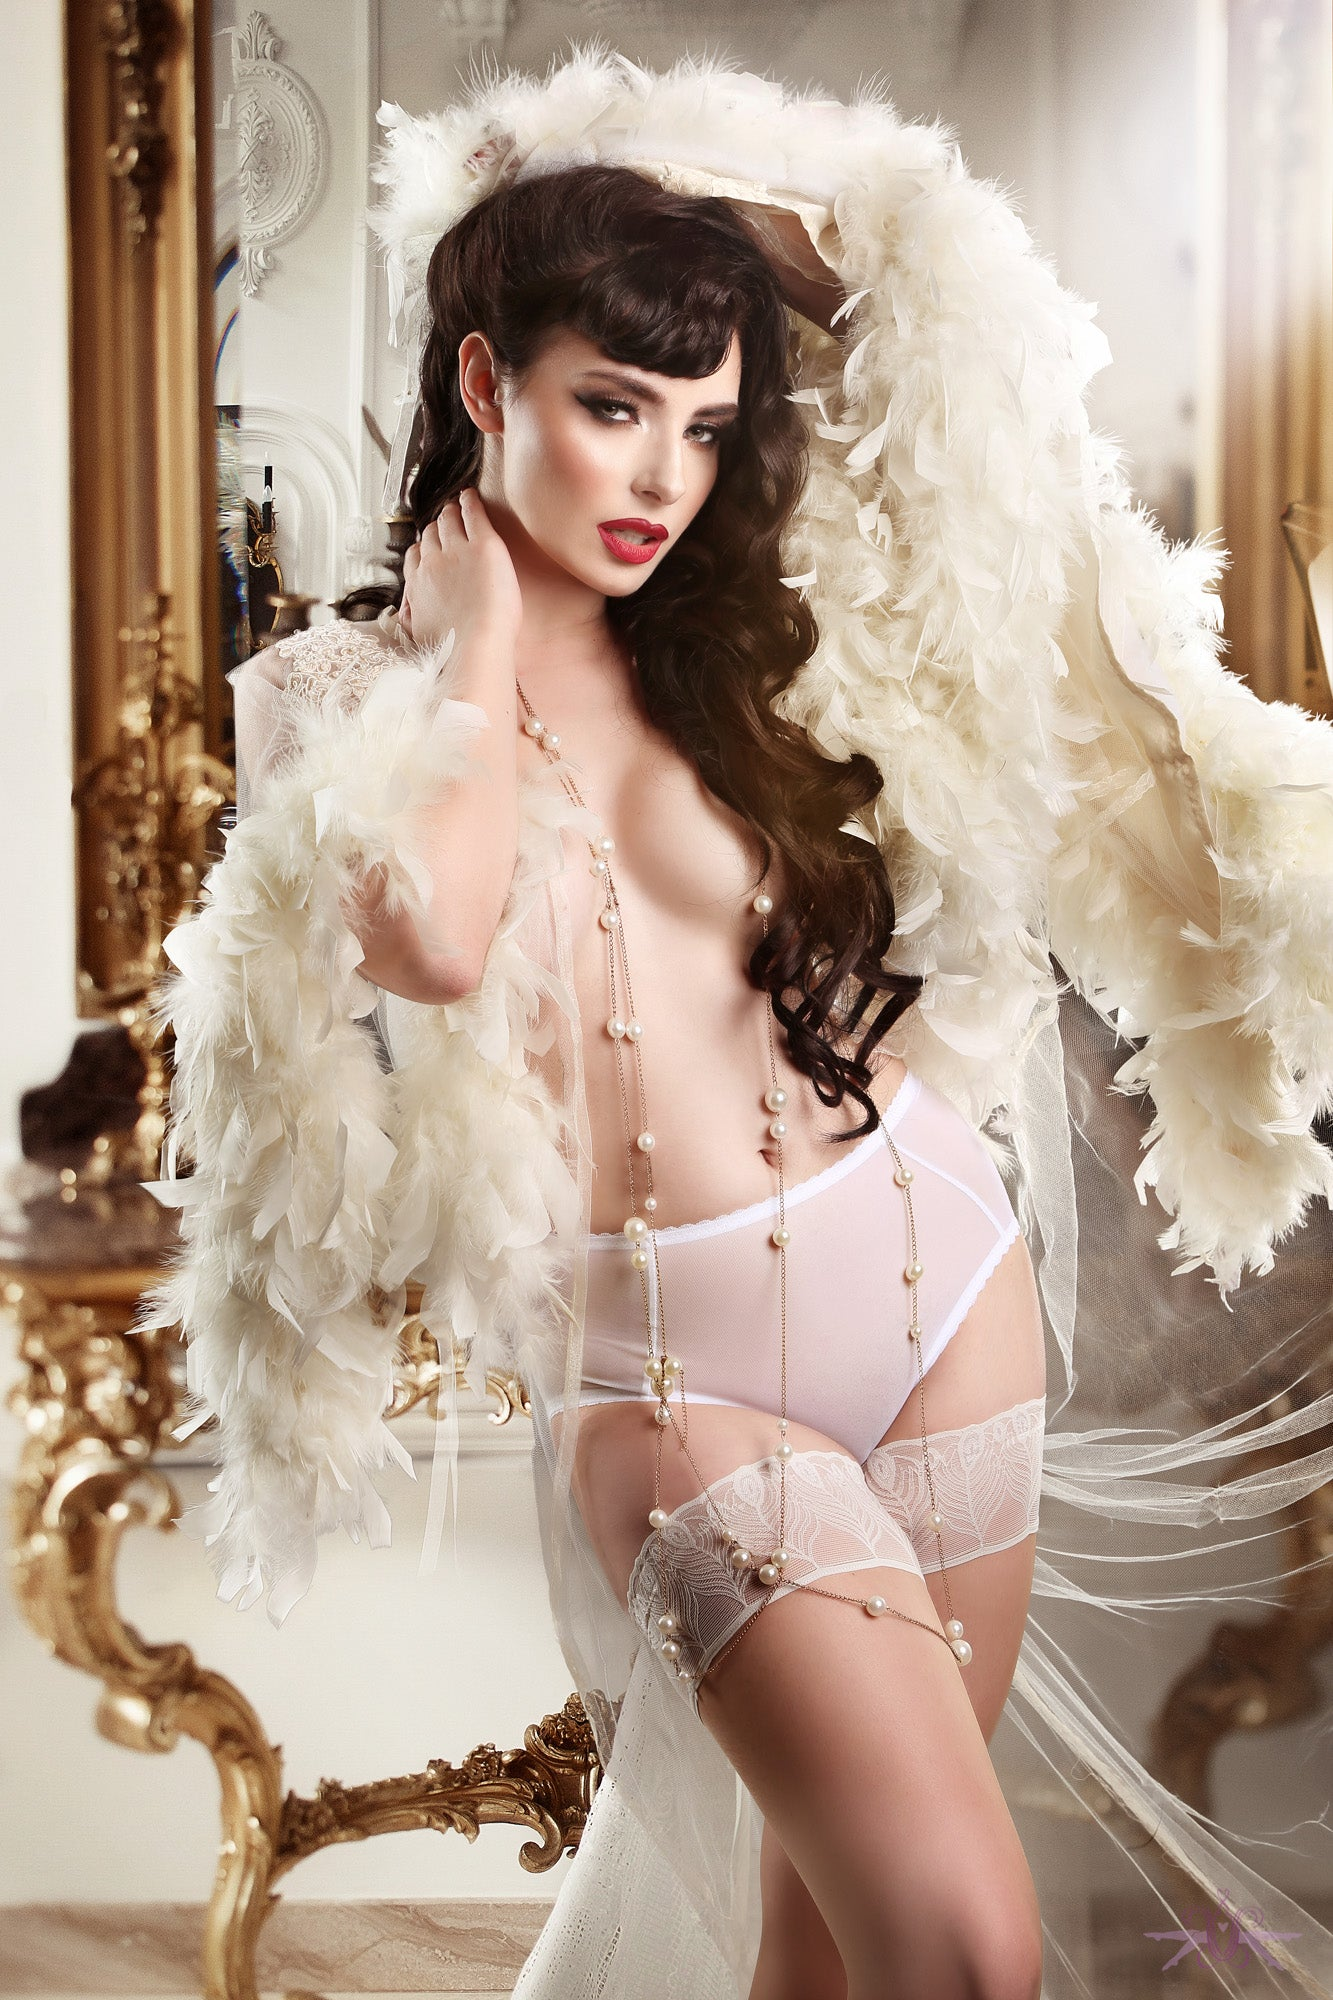 Mayfair Bianca Sheer Open Knickers - Mayfair Stockings